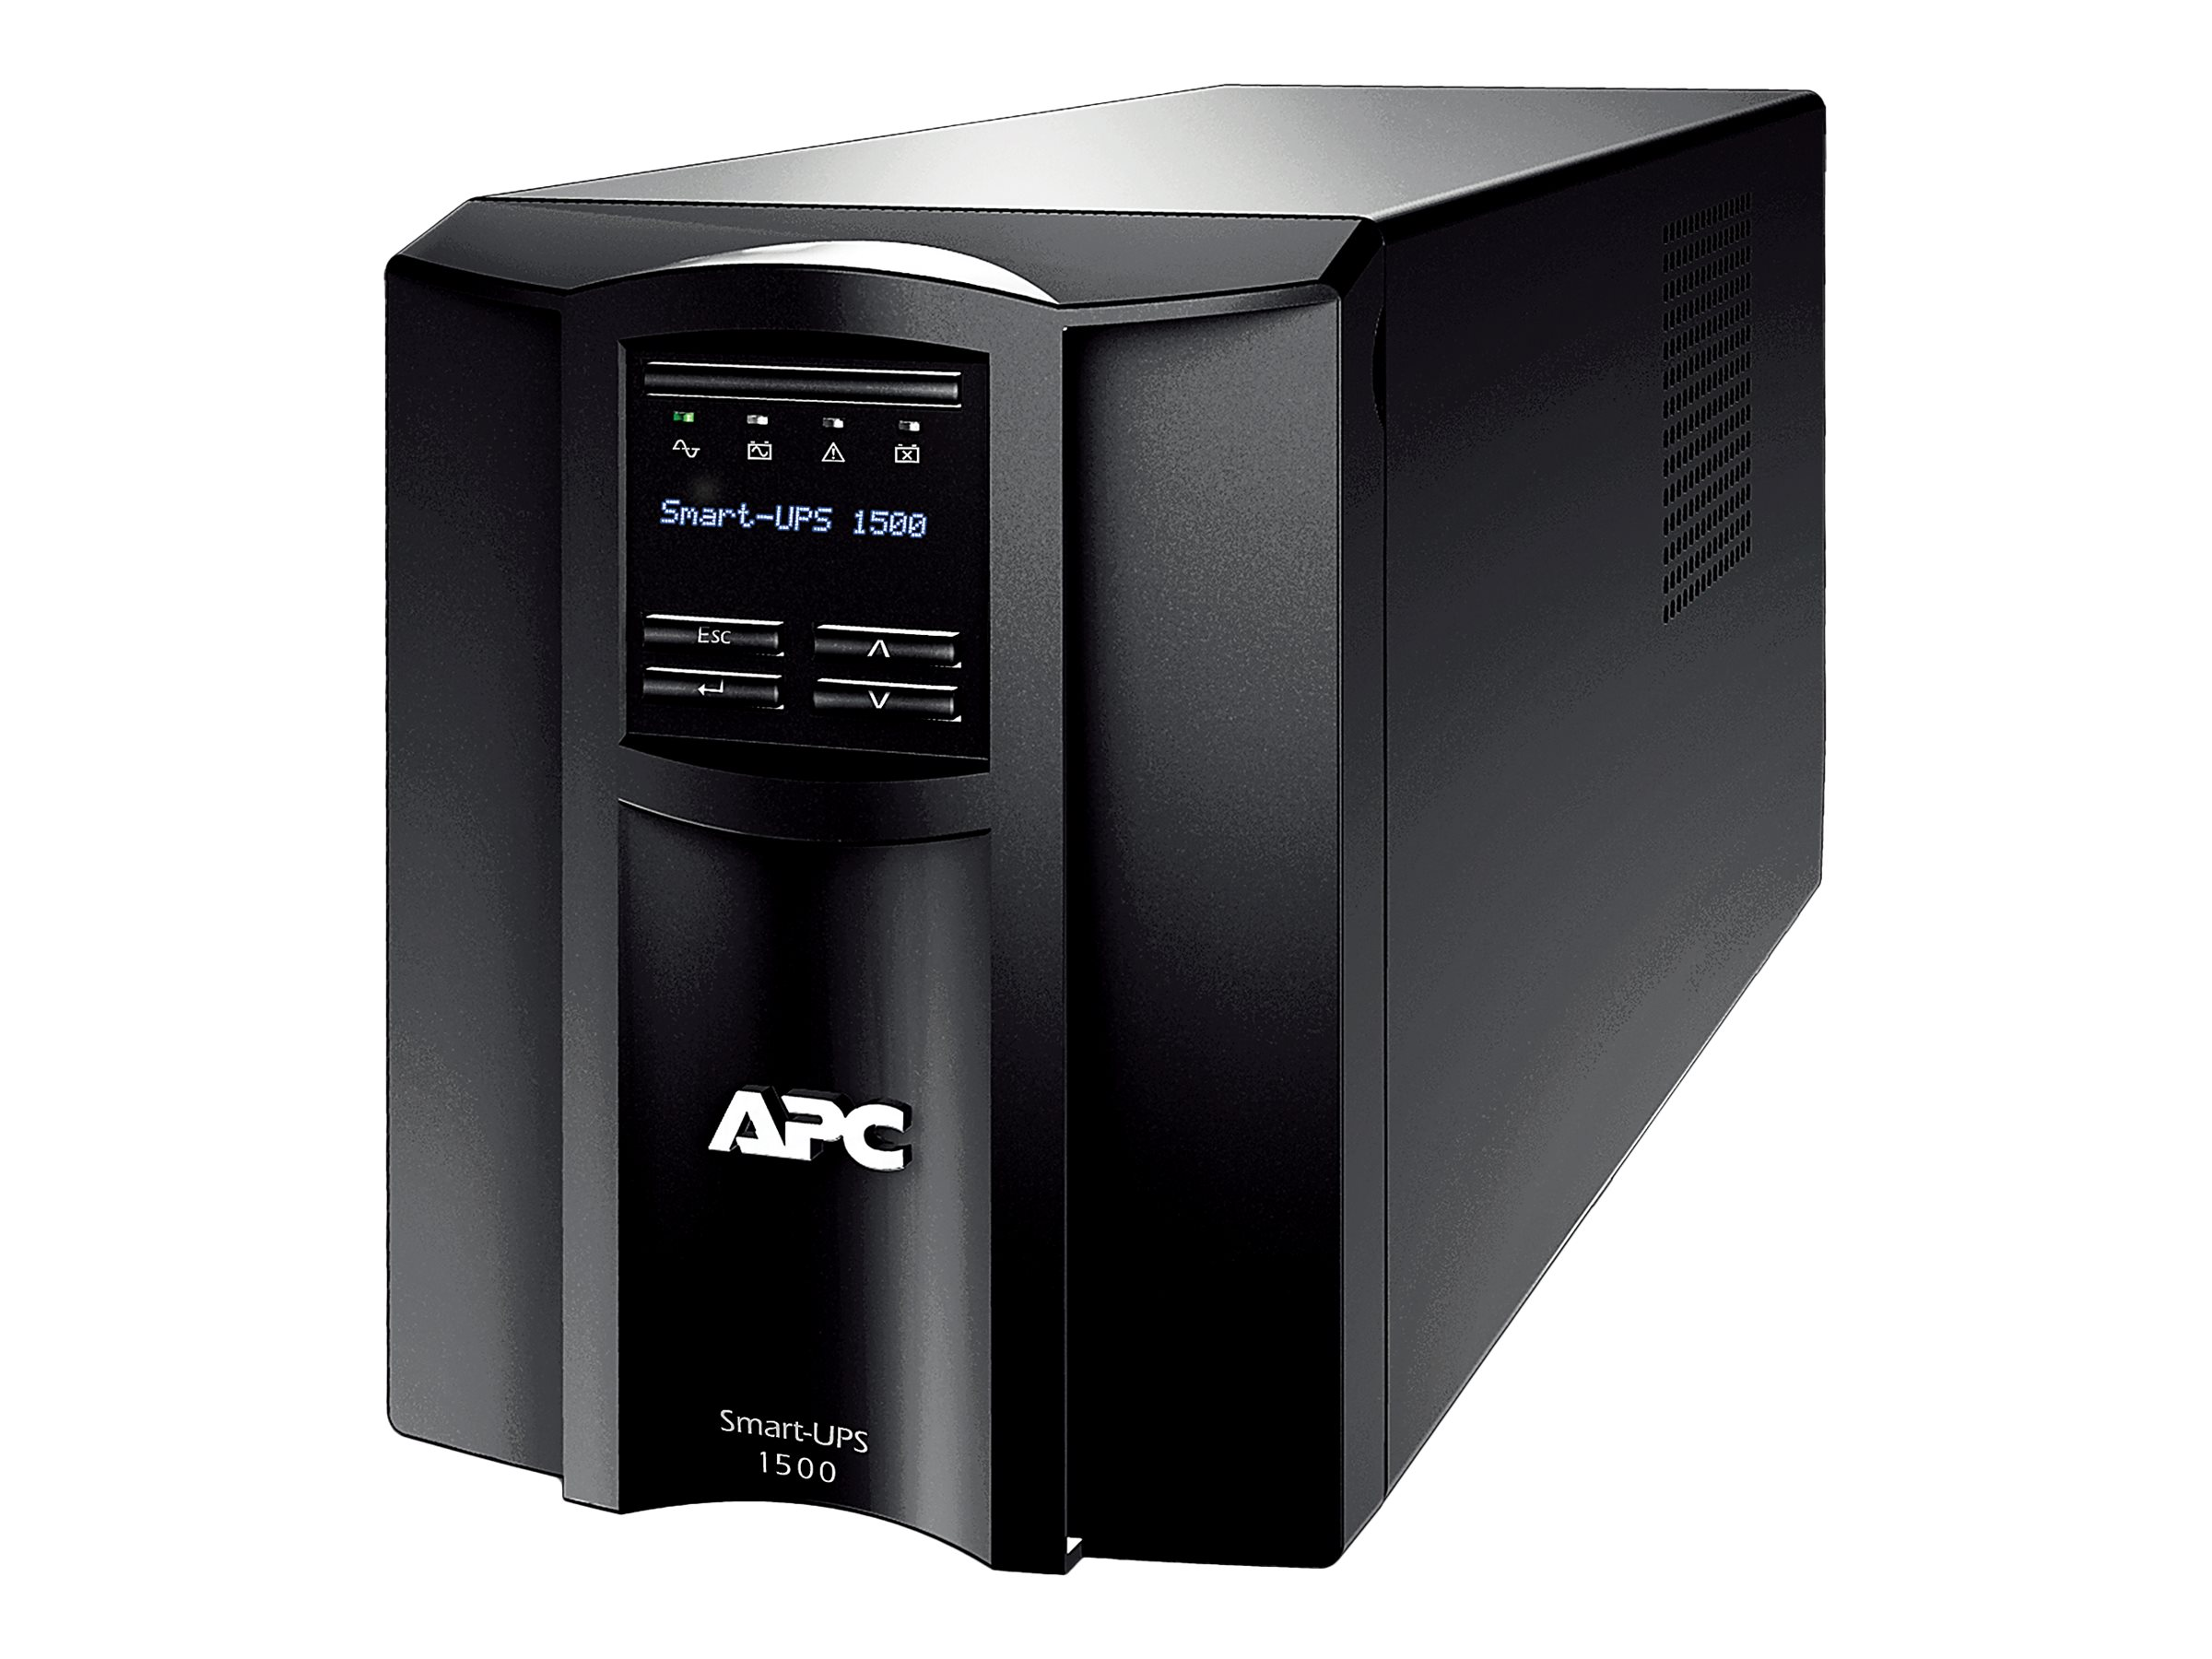 APC Smart-UPS 1500VA 980W 100V Line Interactive LCD Tower UPS (8) Outlets USB, Japan